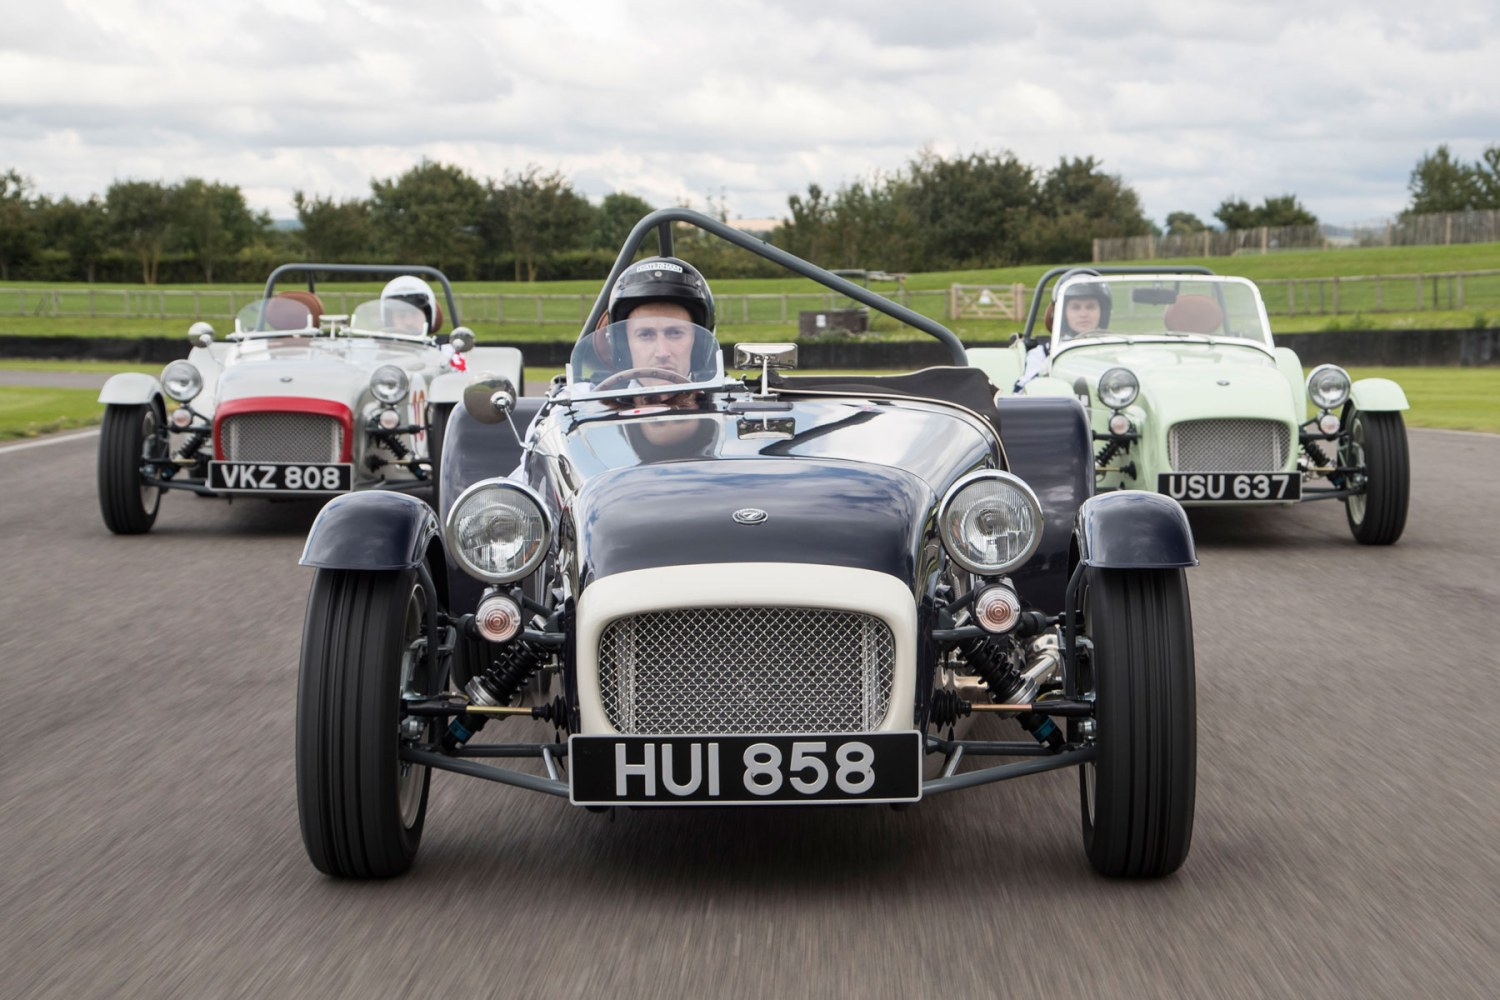 The Caterham Seven SuperSprint sold out within seven hours